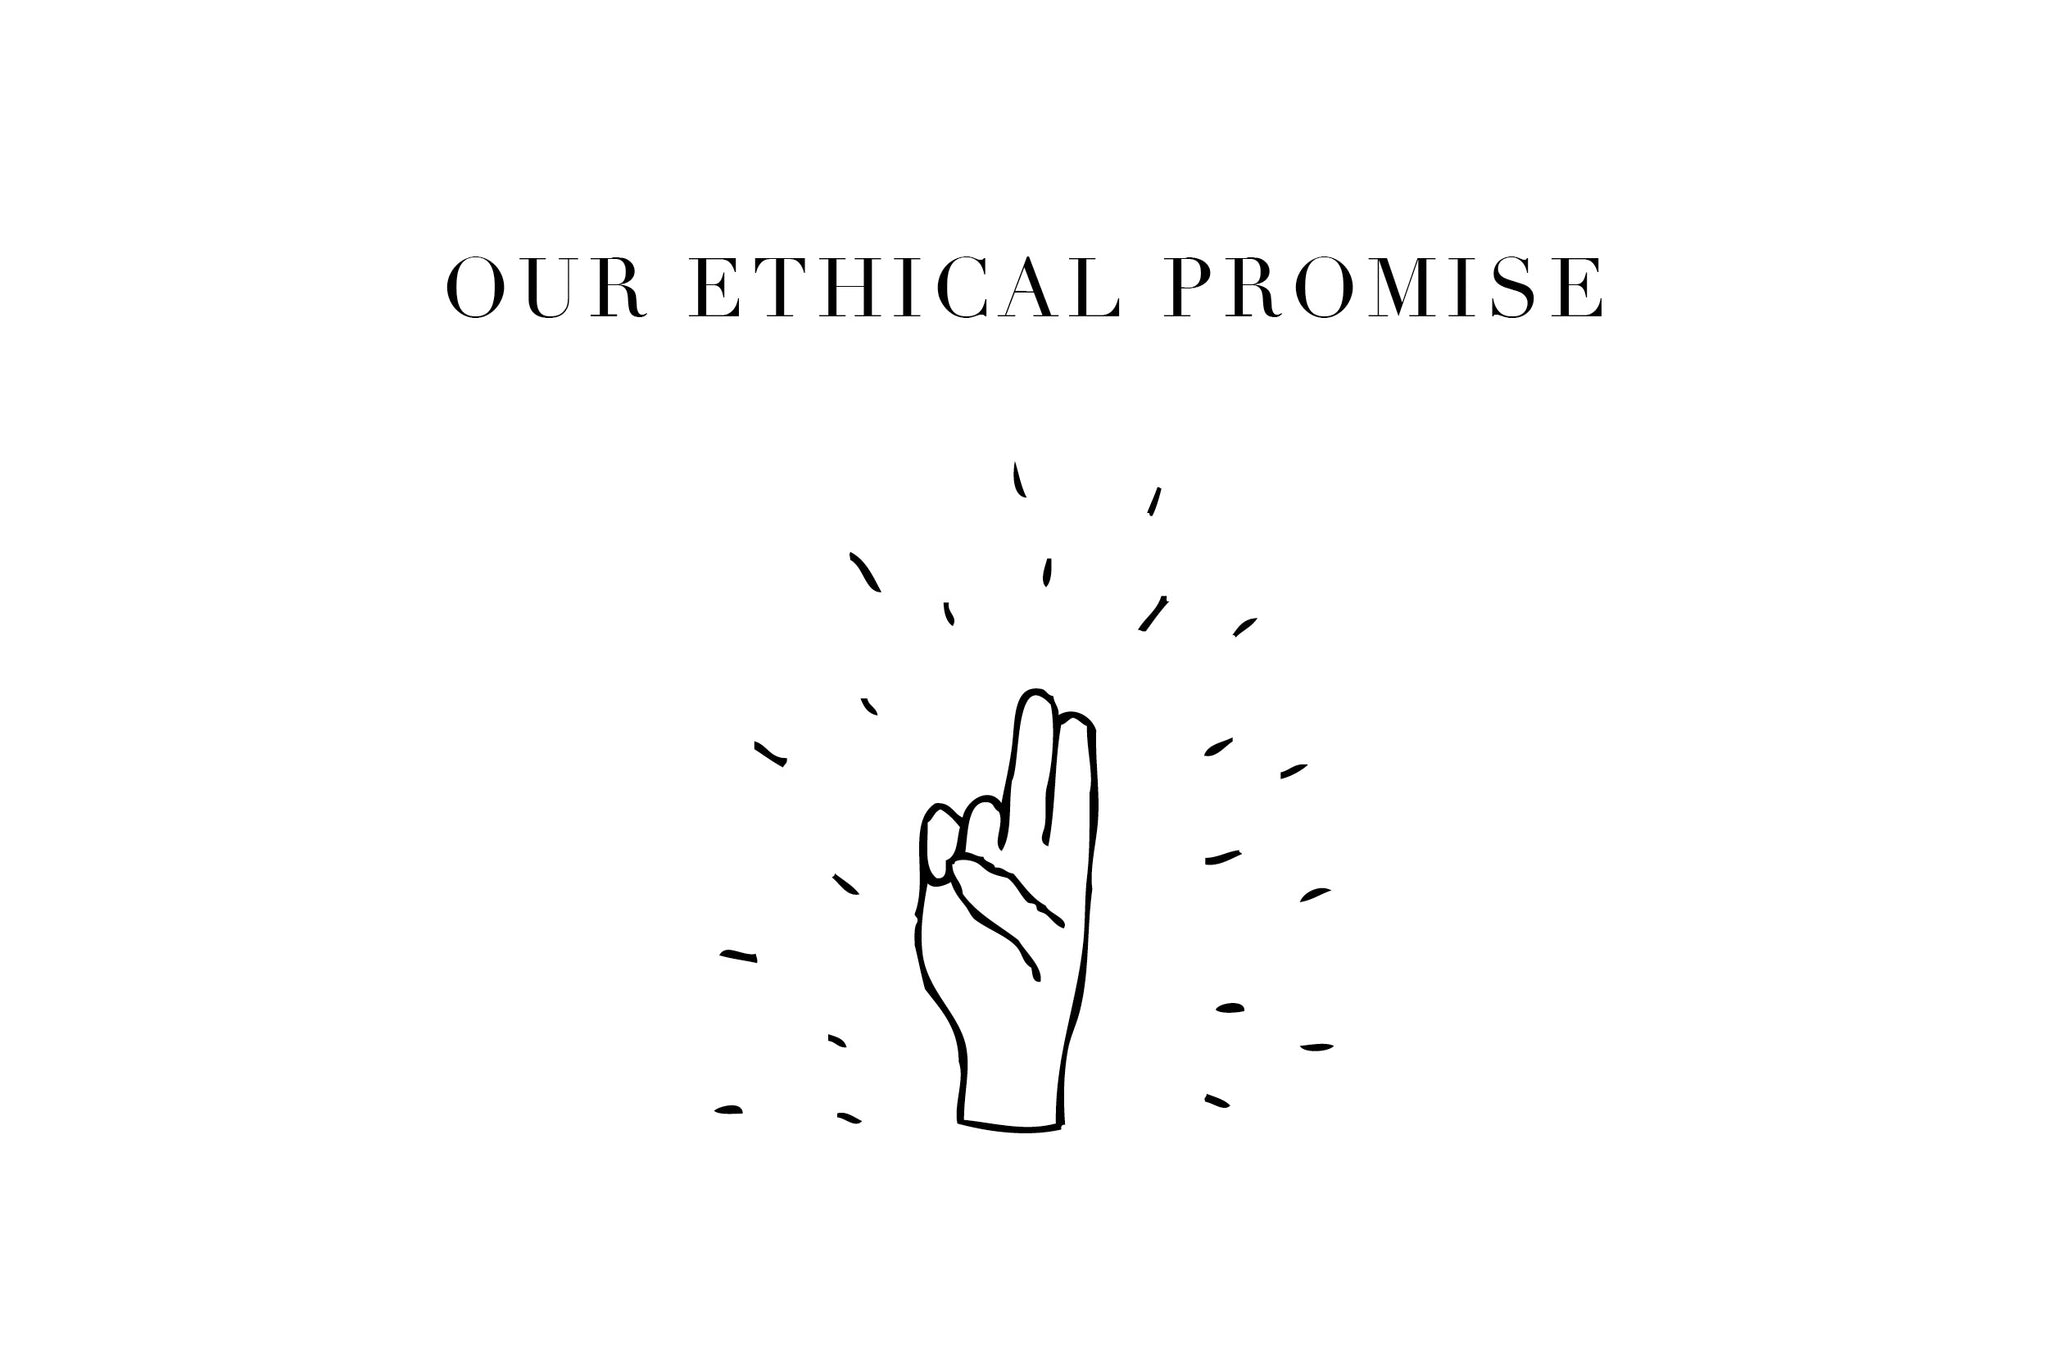 Audrey Claude Jewellery's ethical promise